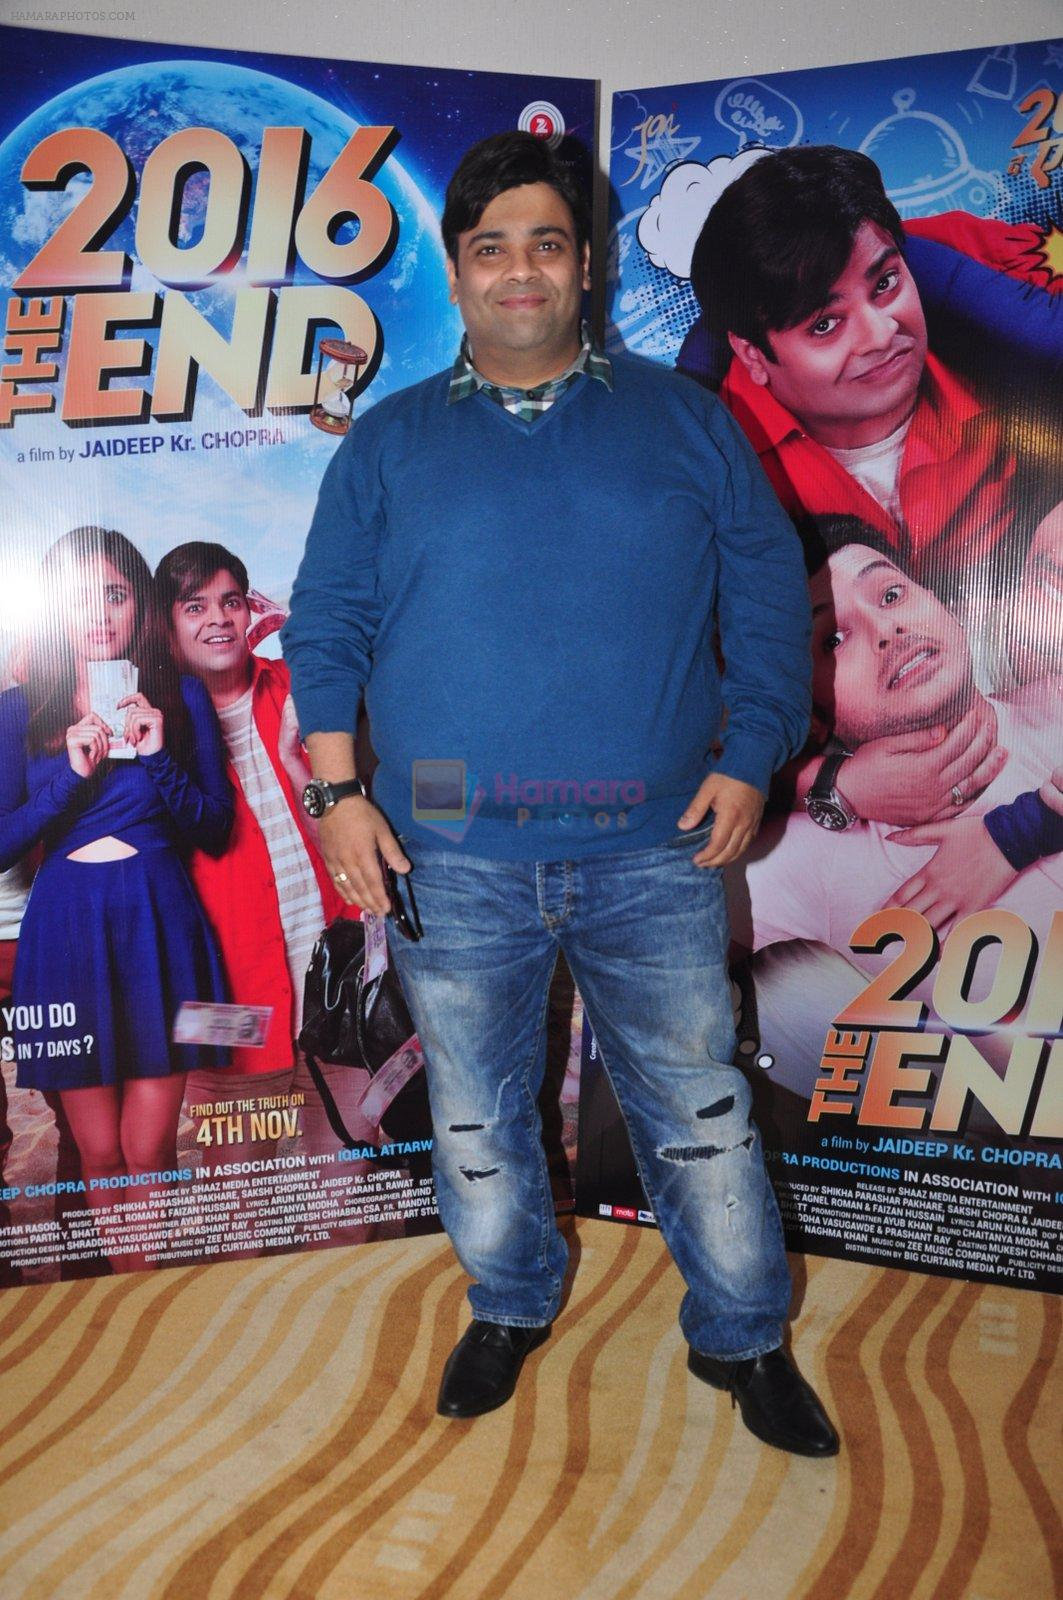 Kiku Sharda at the Trailer launch of film 2016 The End on 6th Oct 2016